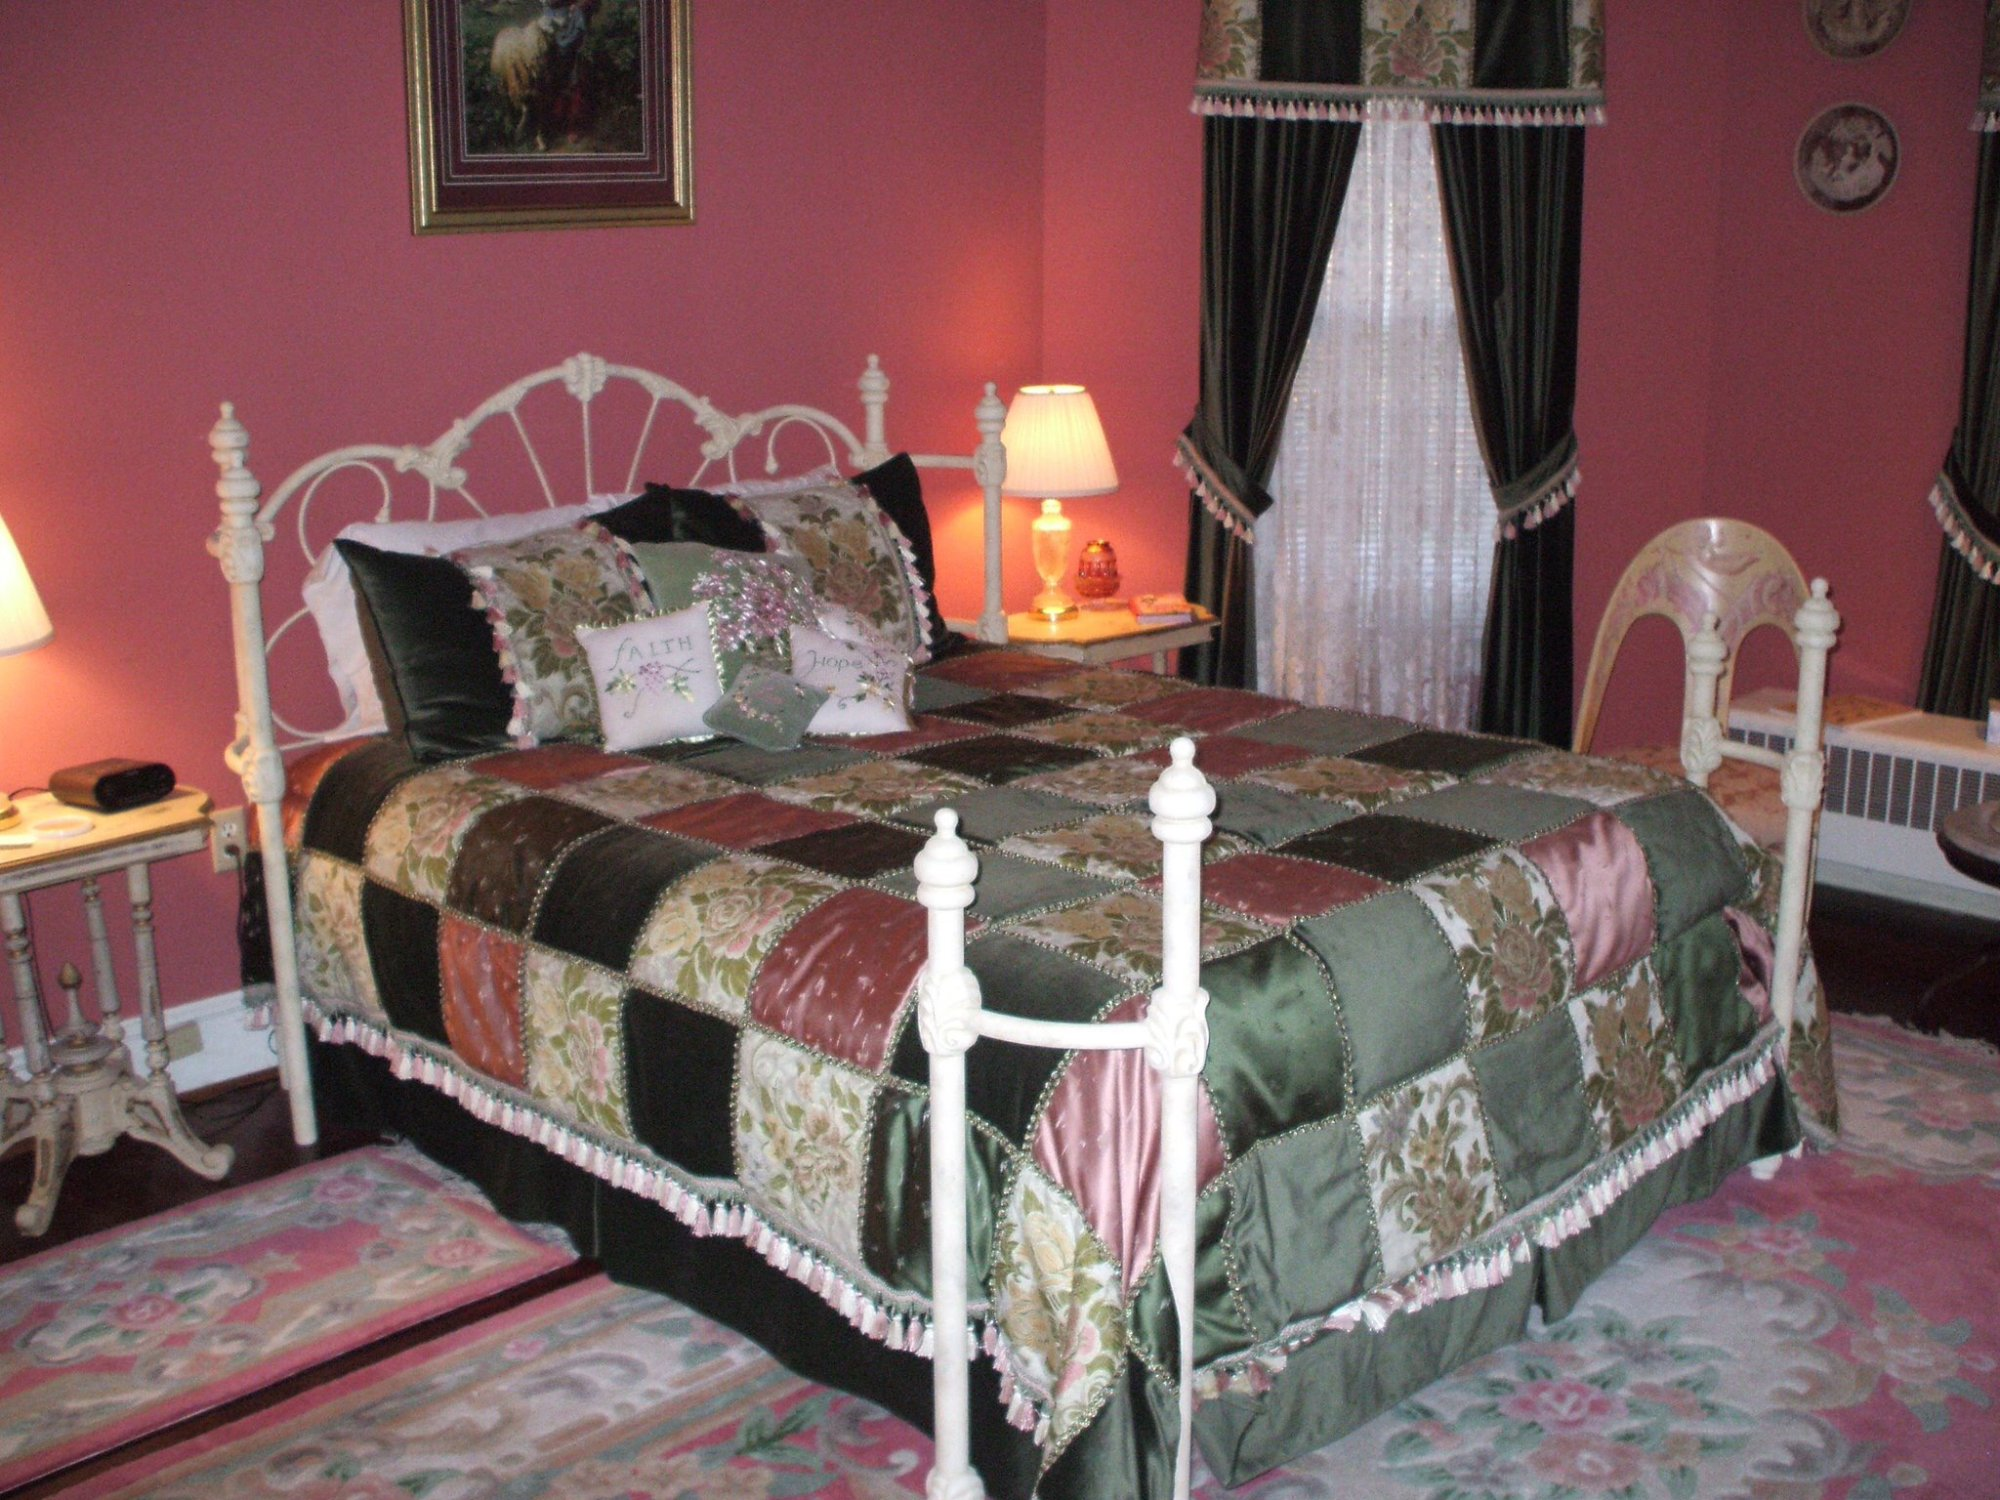 Ivycrest Inn Bed and Breakfast